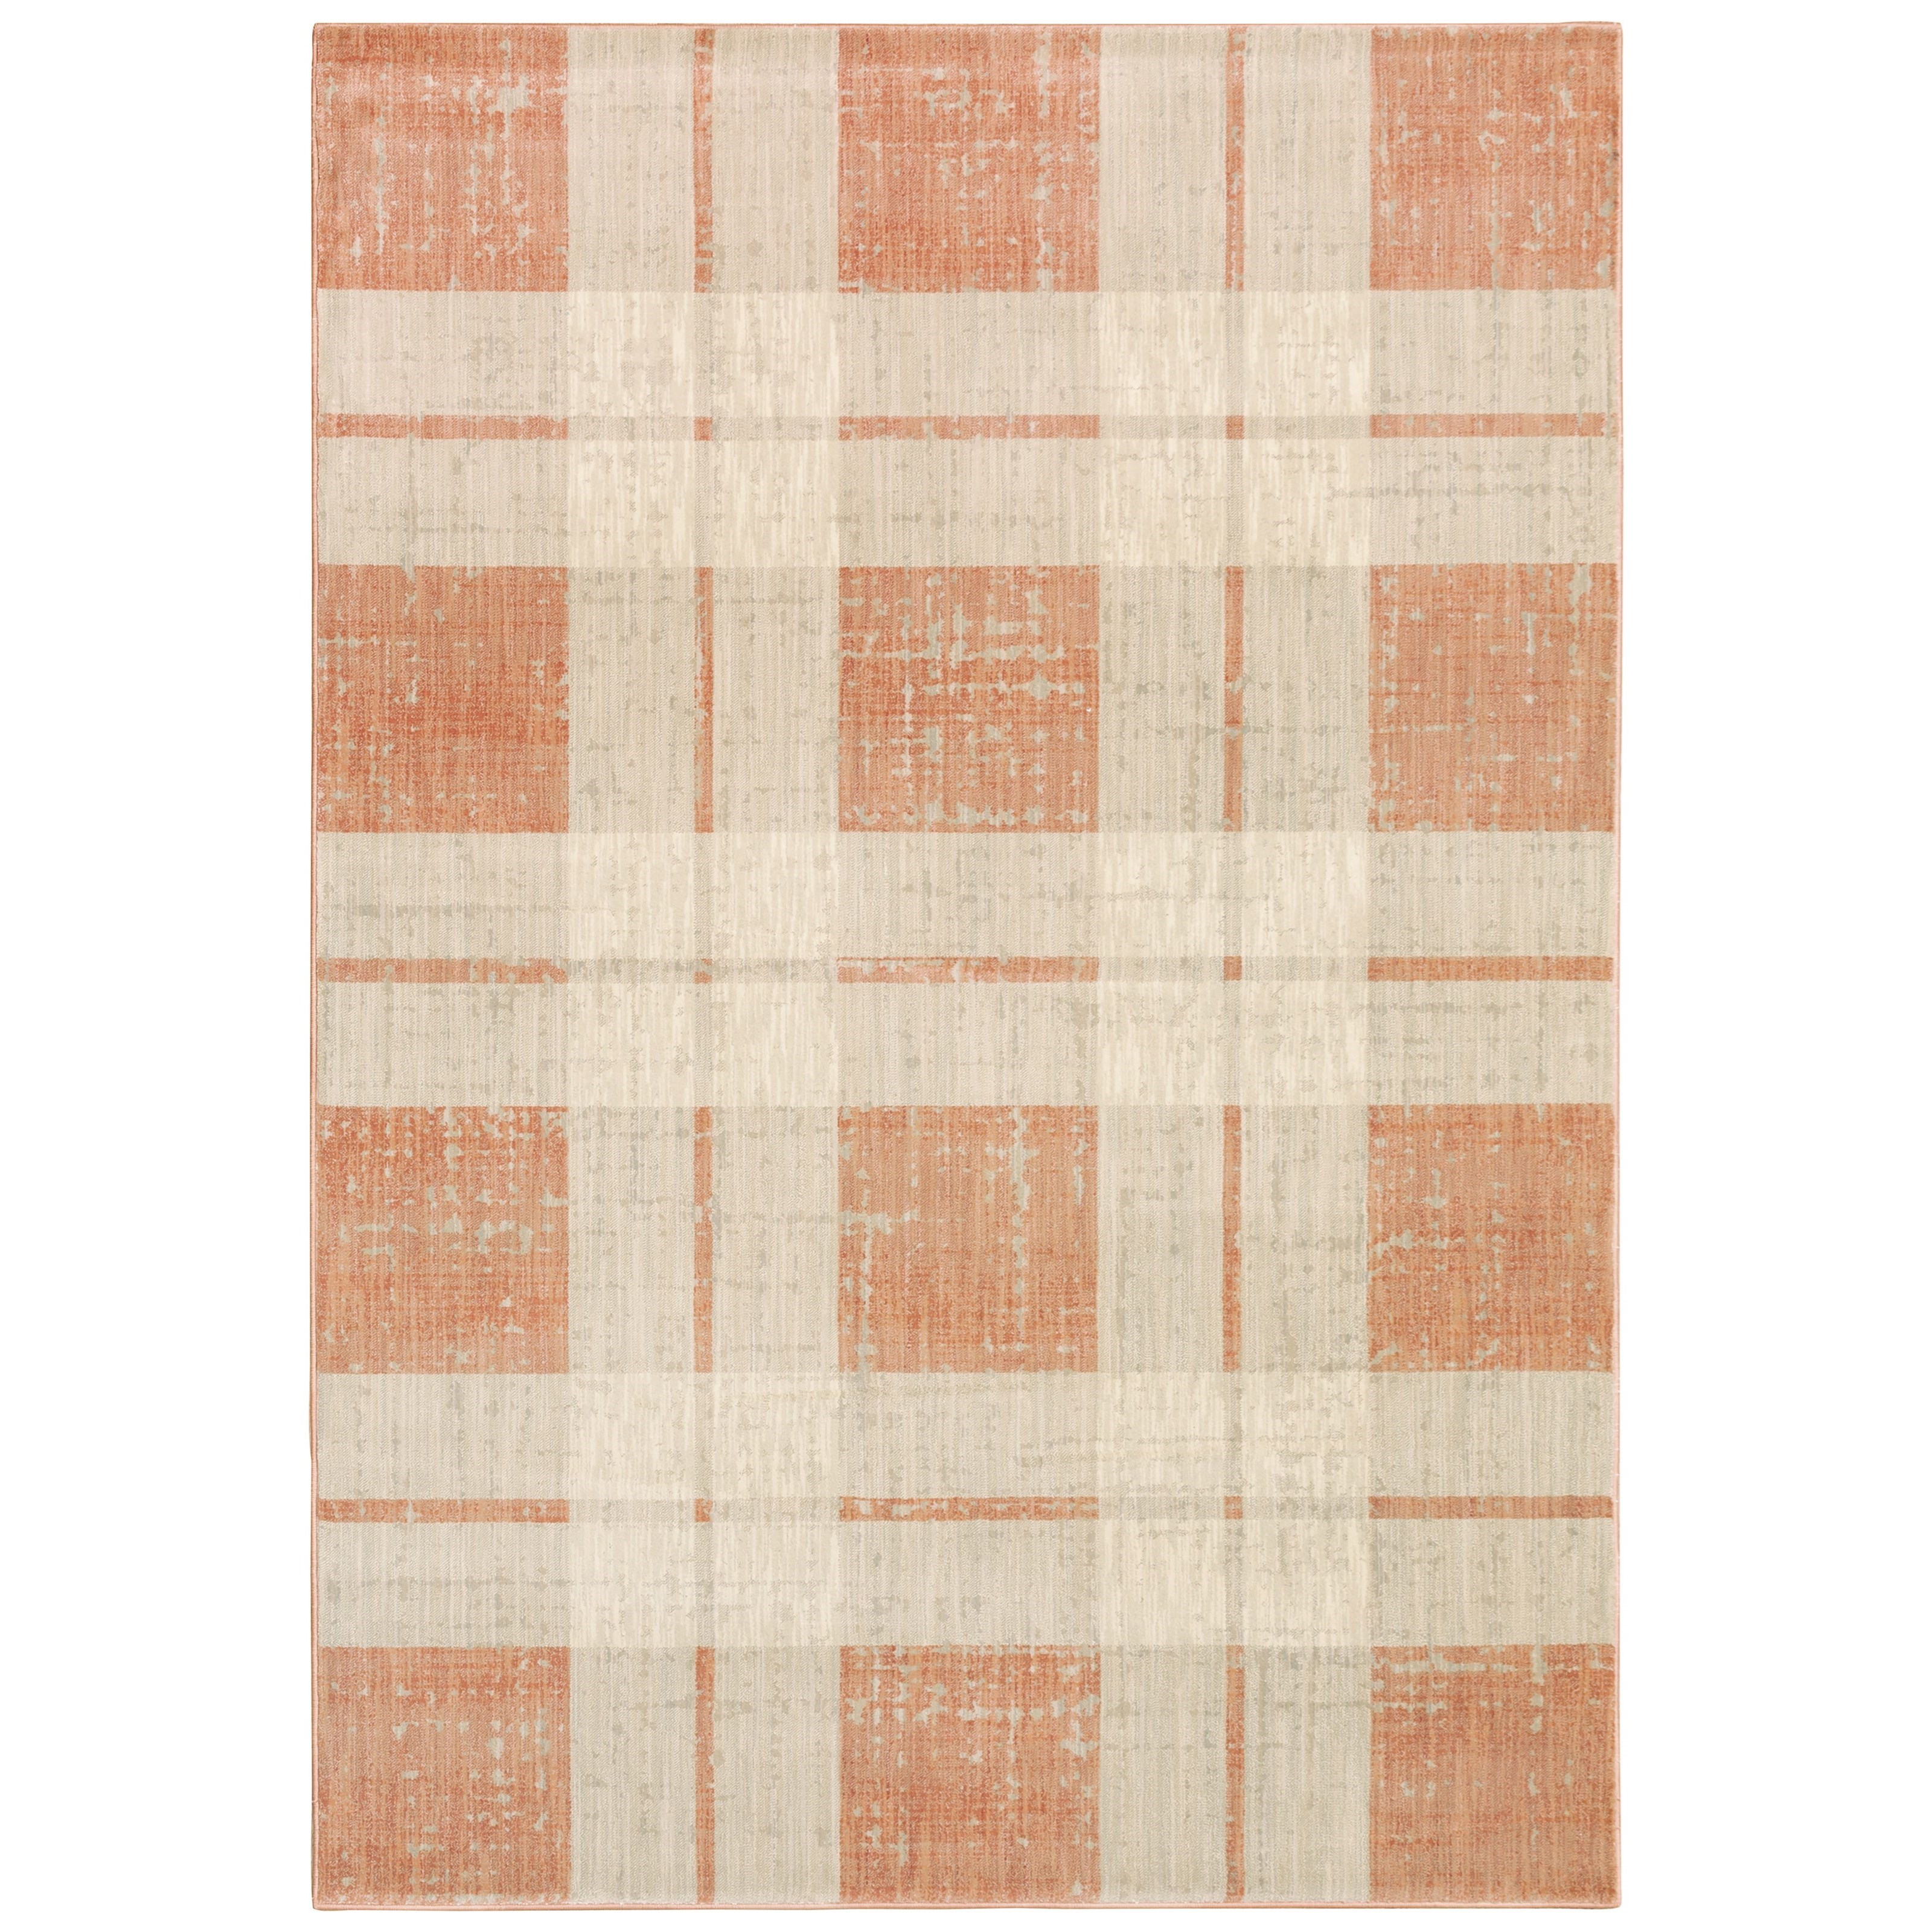 "Xanadu 9'10"" X 12'10"" Rectangle Rug by Oriental Weavers at Steger's Furniture"